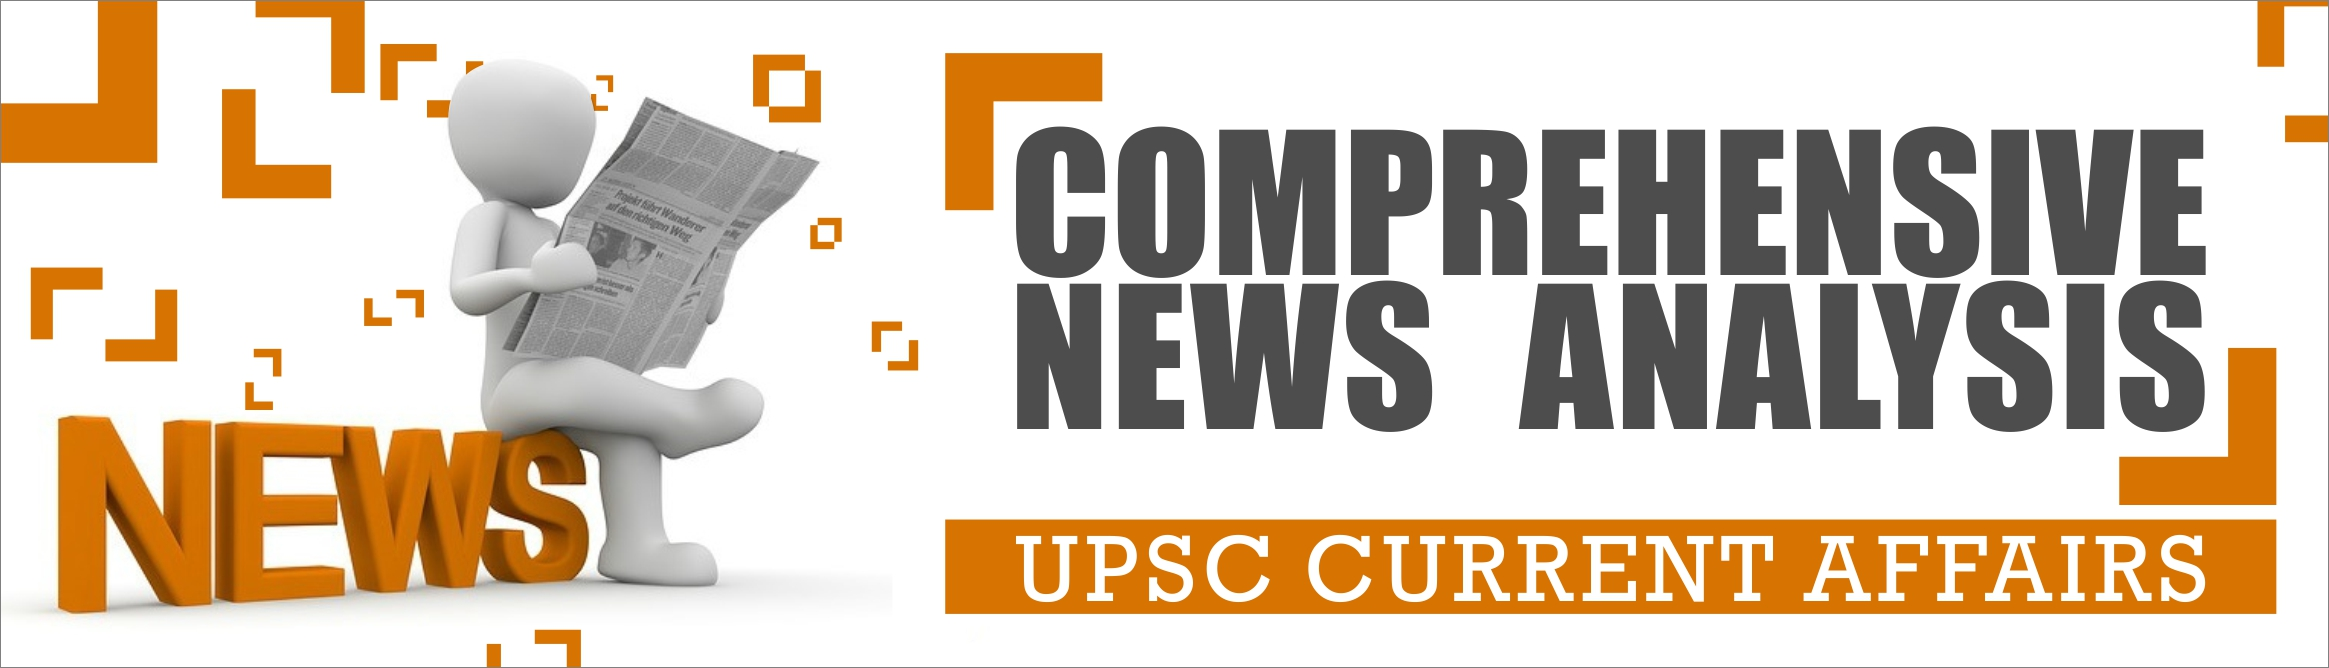 UPSC Current Affairs: Daily News Analysis